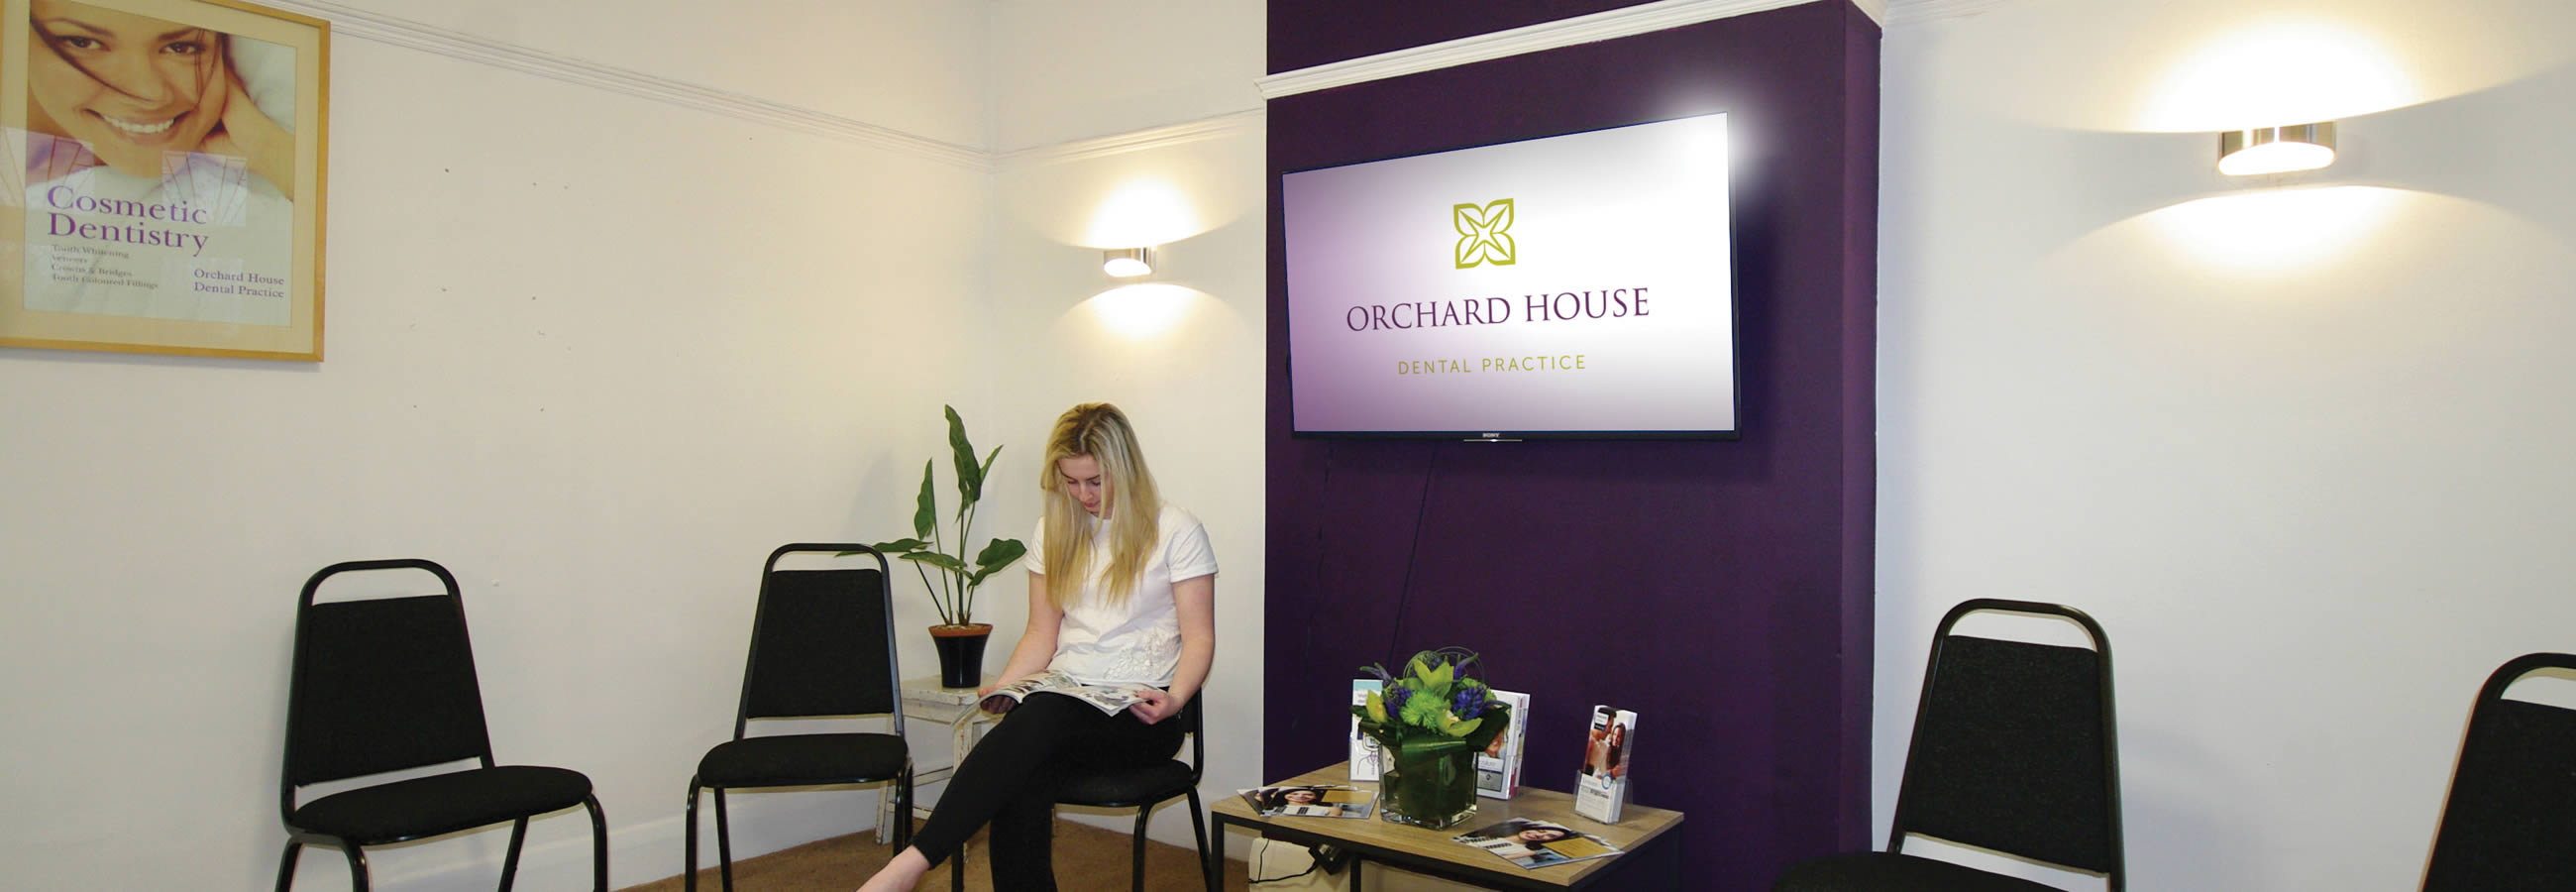 Special Offers at Orchard House Dental Practice in Beckenham, Kent